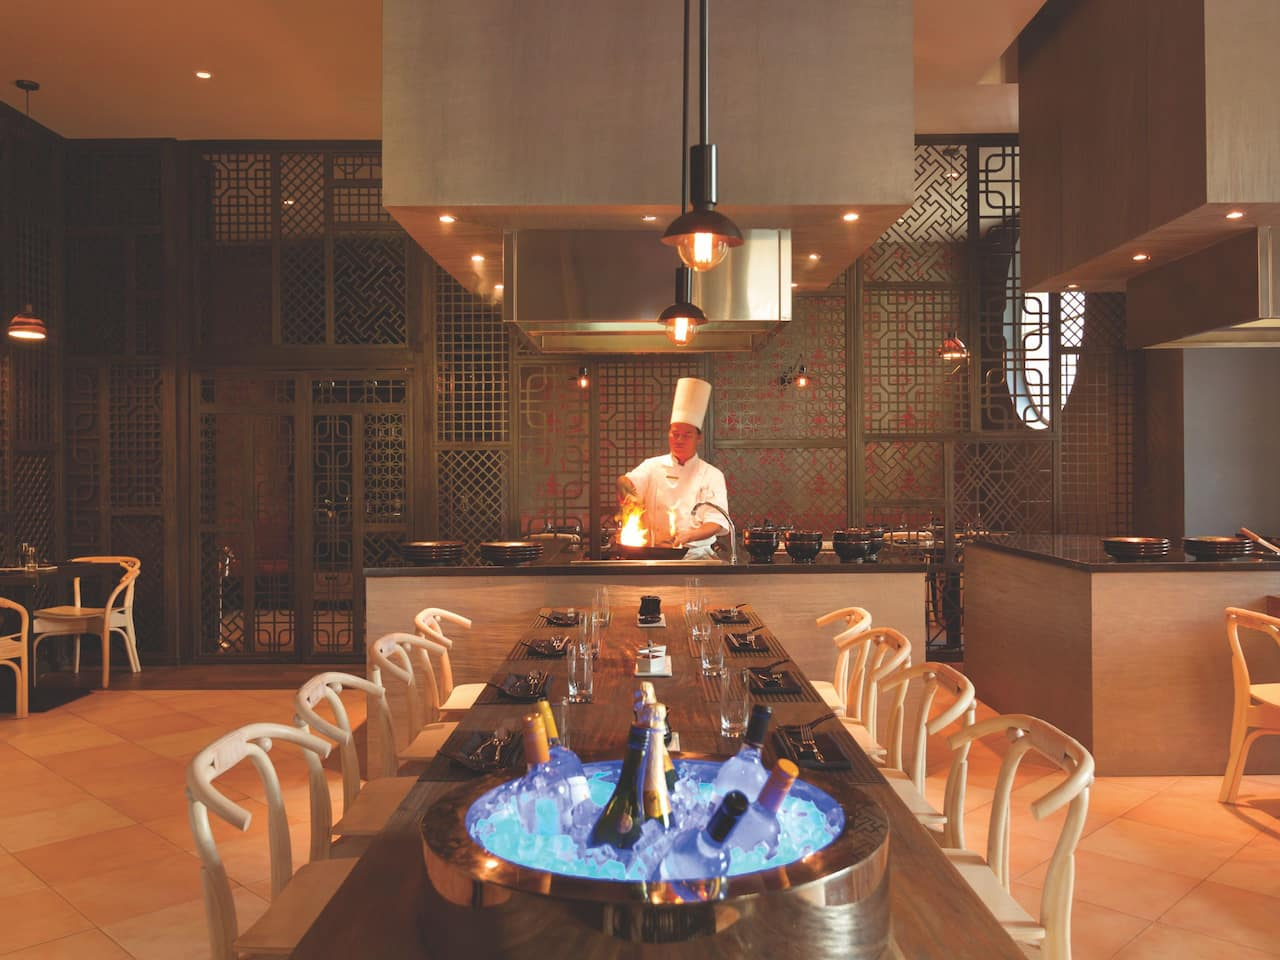 Chef cooking in open kitchen